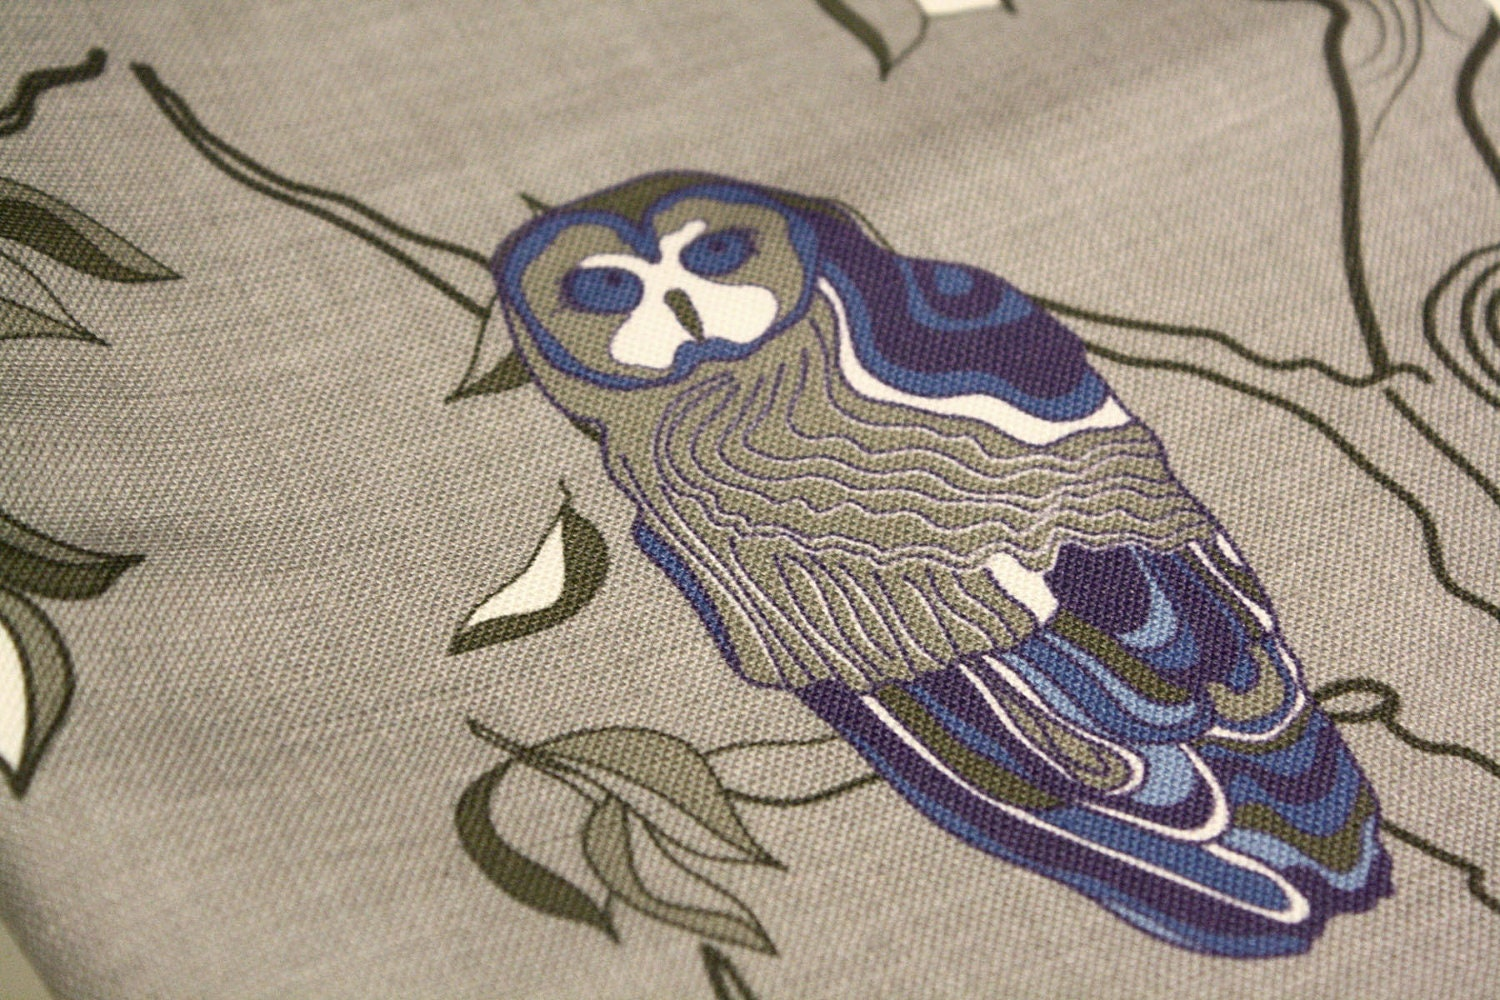 Medium Weight Fabric with owls - custom design  - Greys, blues, white - ships 10 days after order - NewMomDesigns